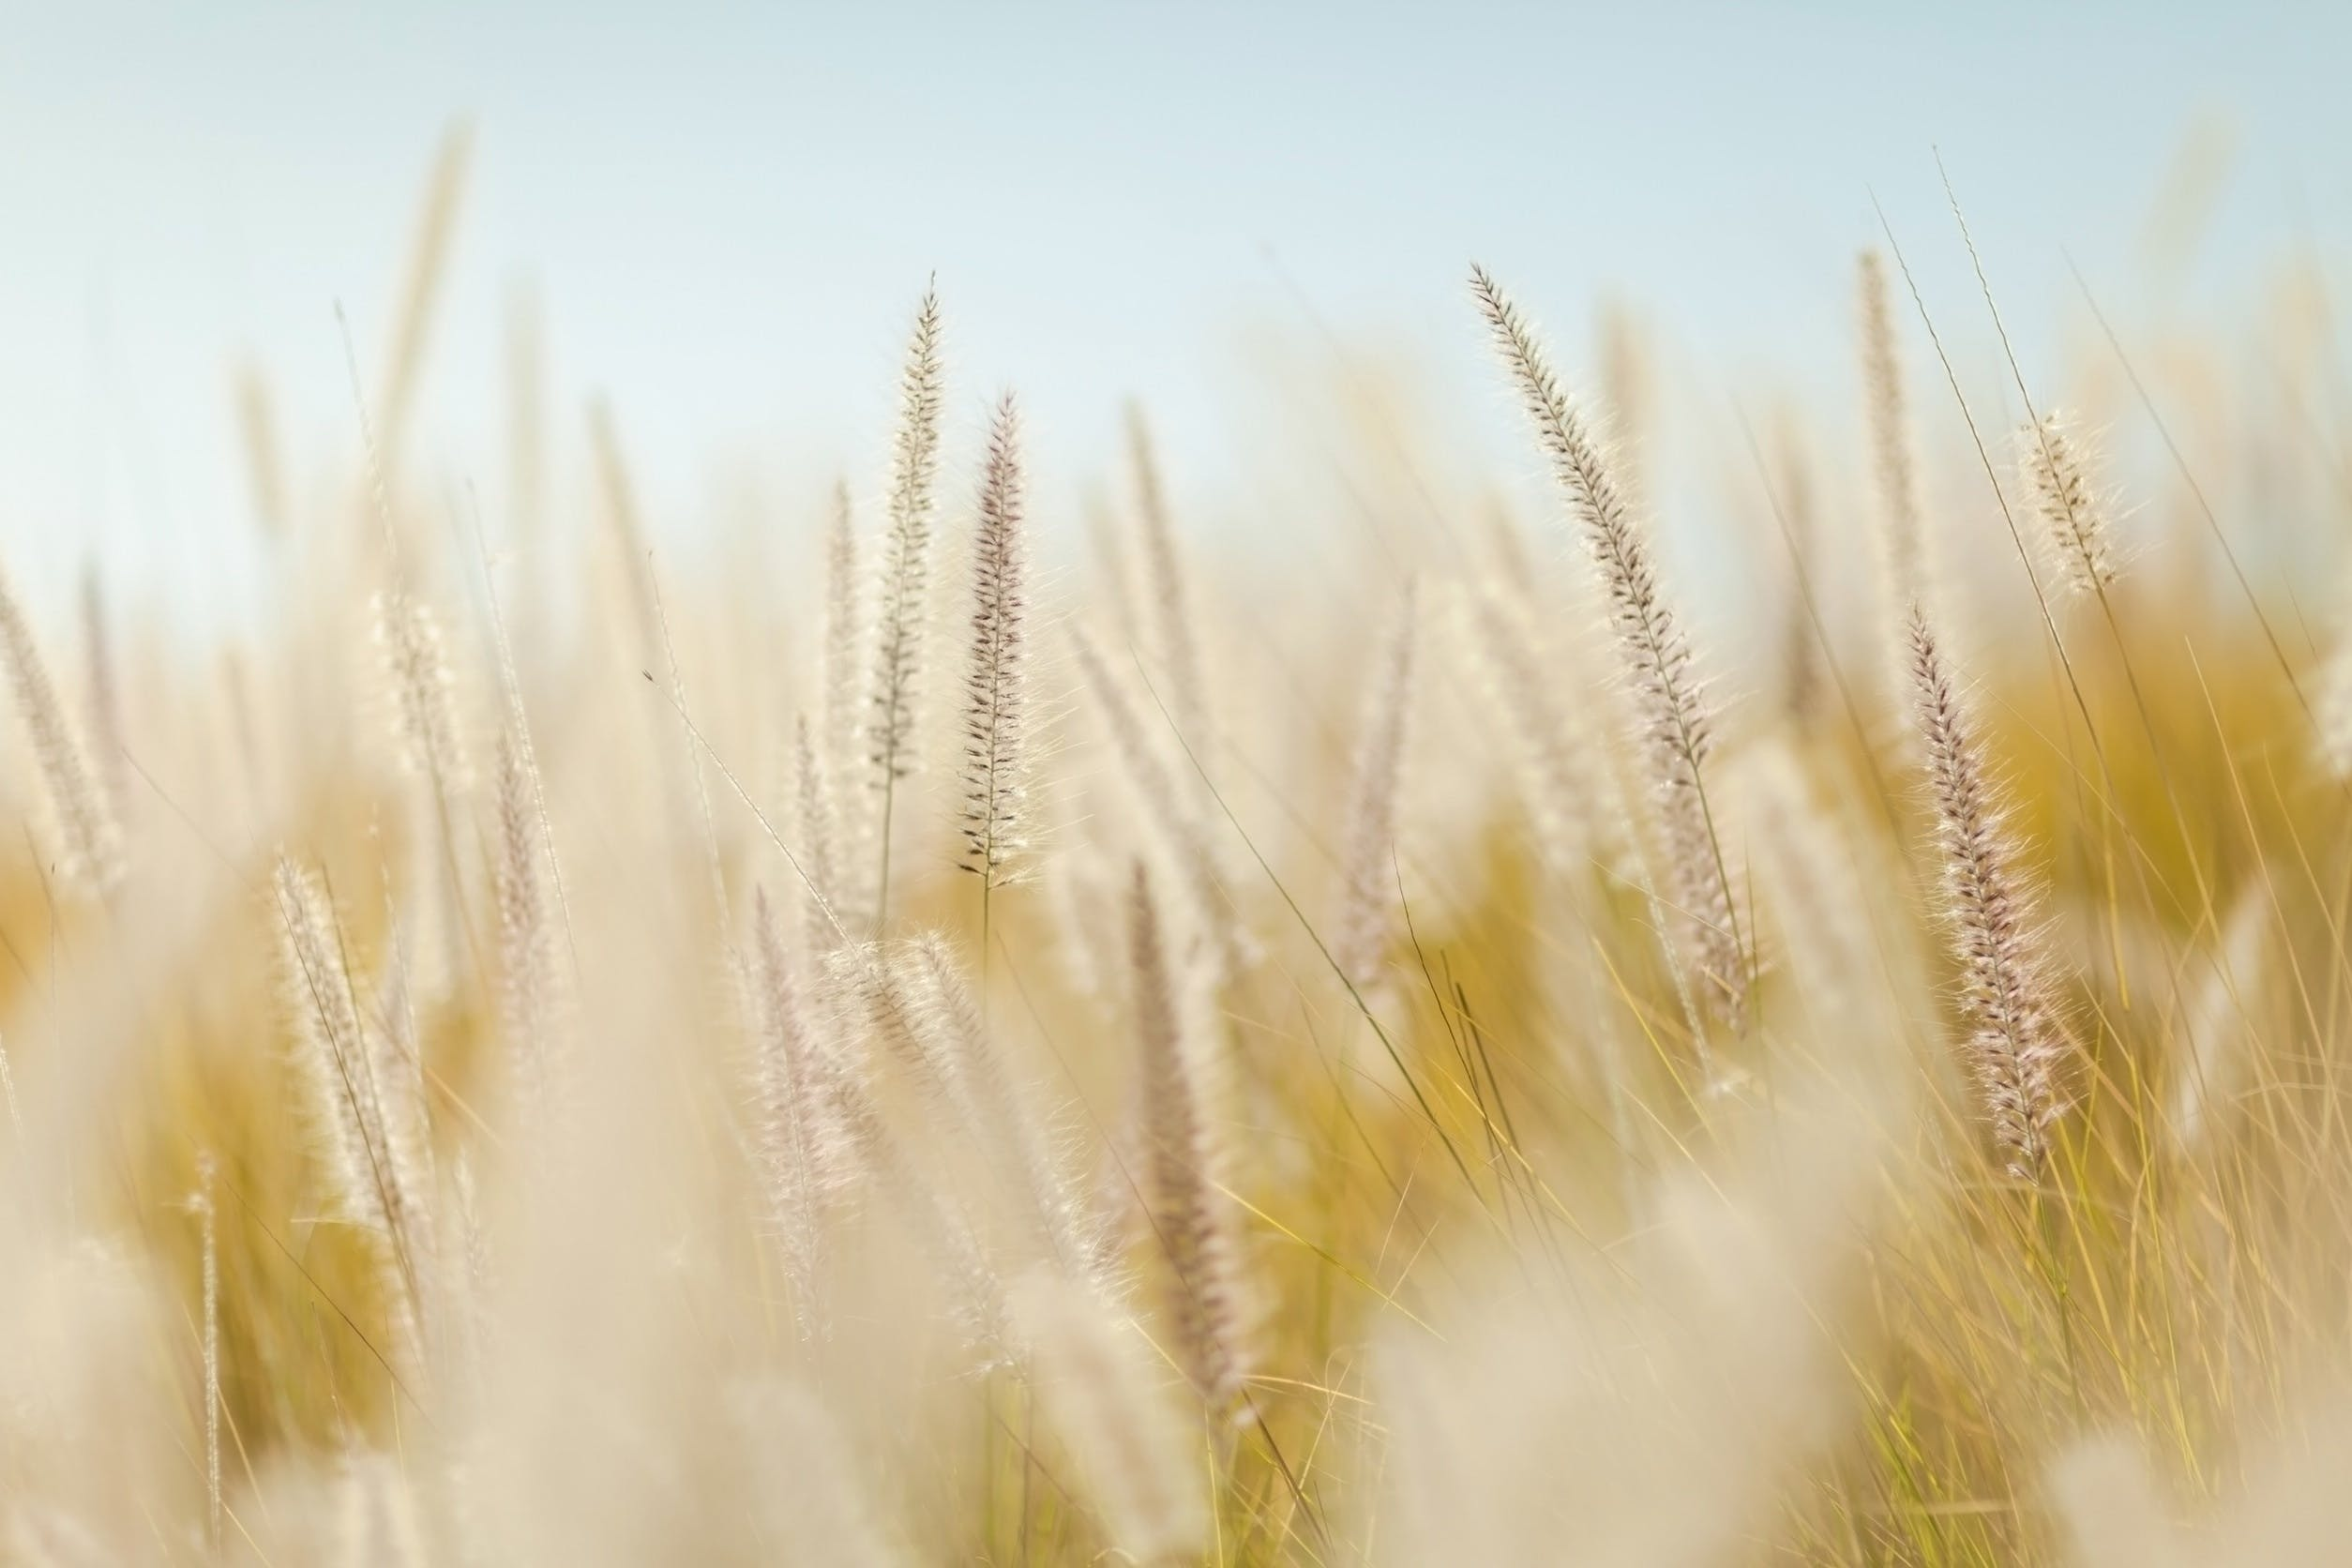 Free stock photo of field, agriculture, plants, wheat